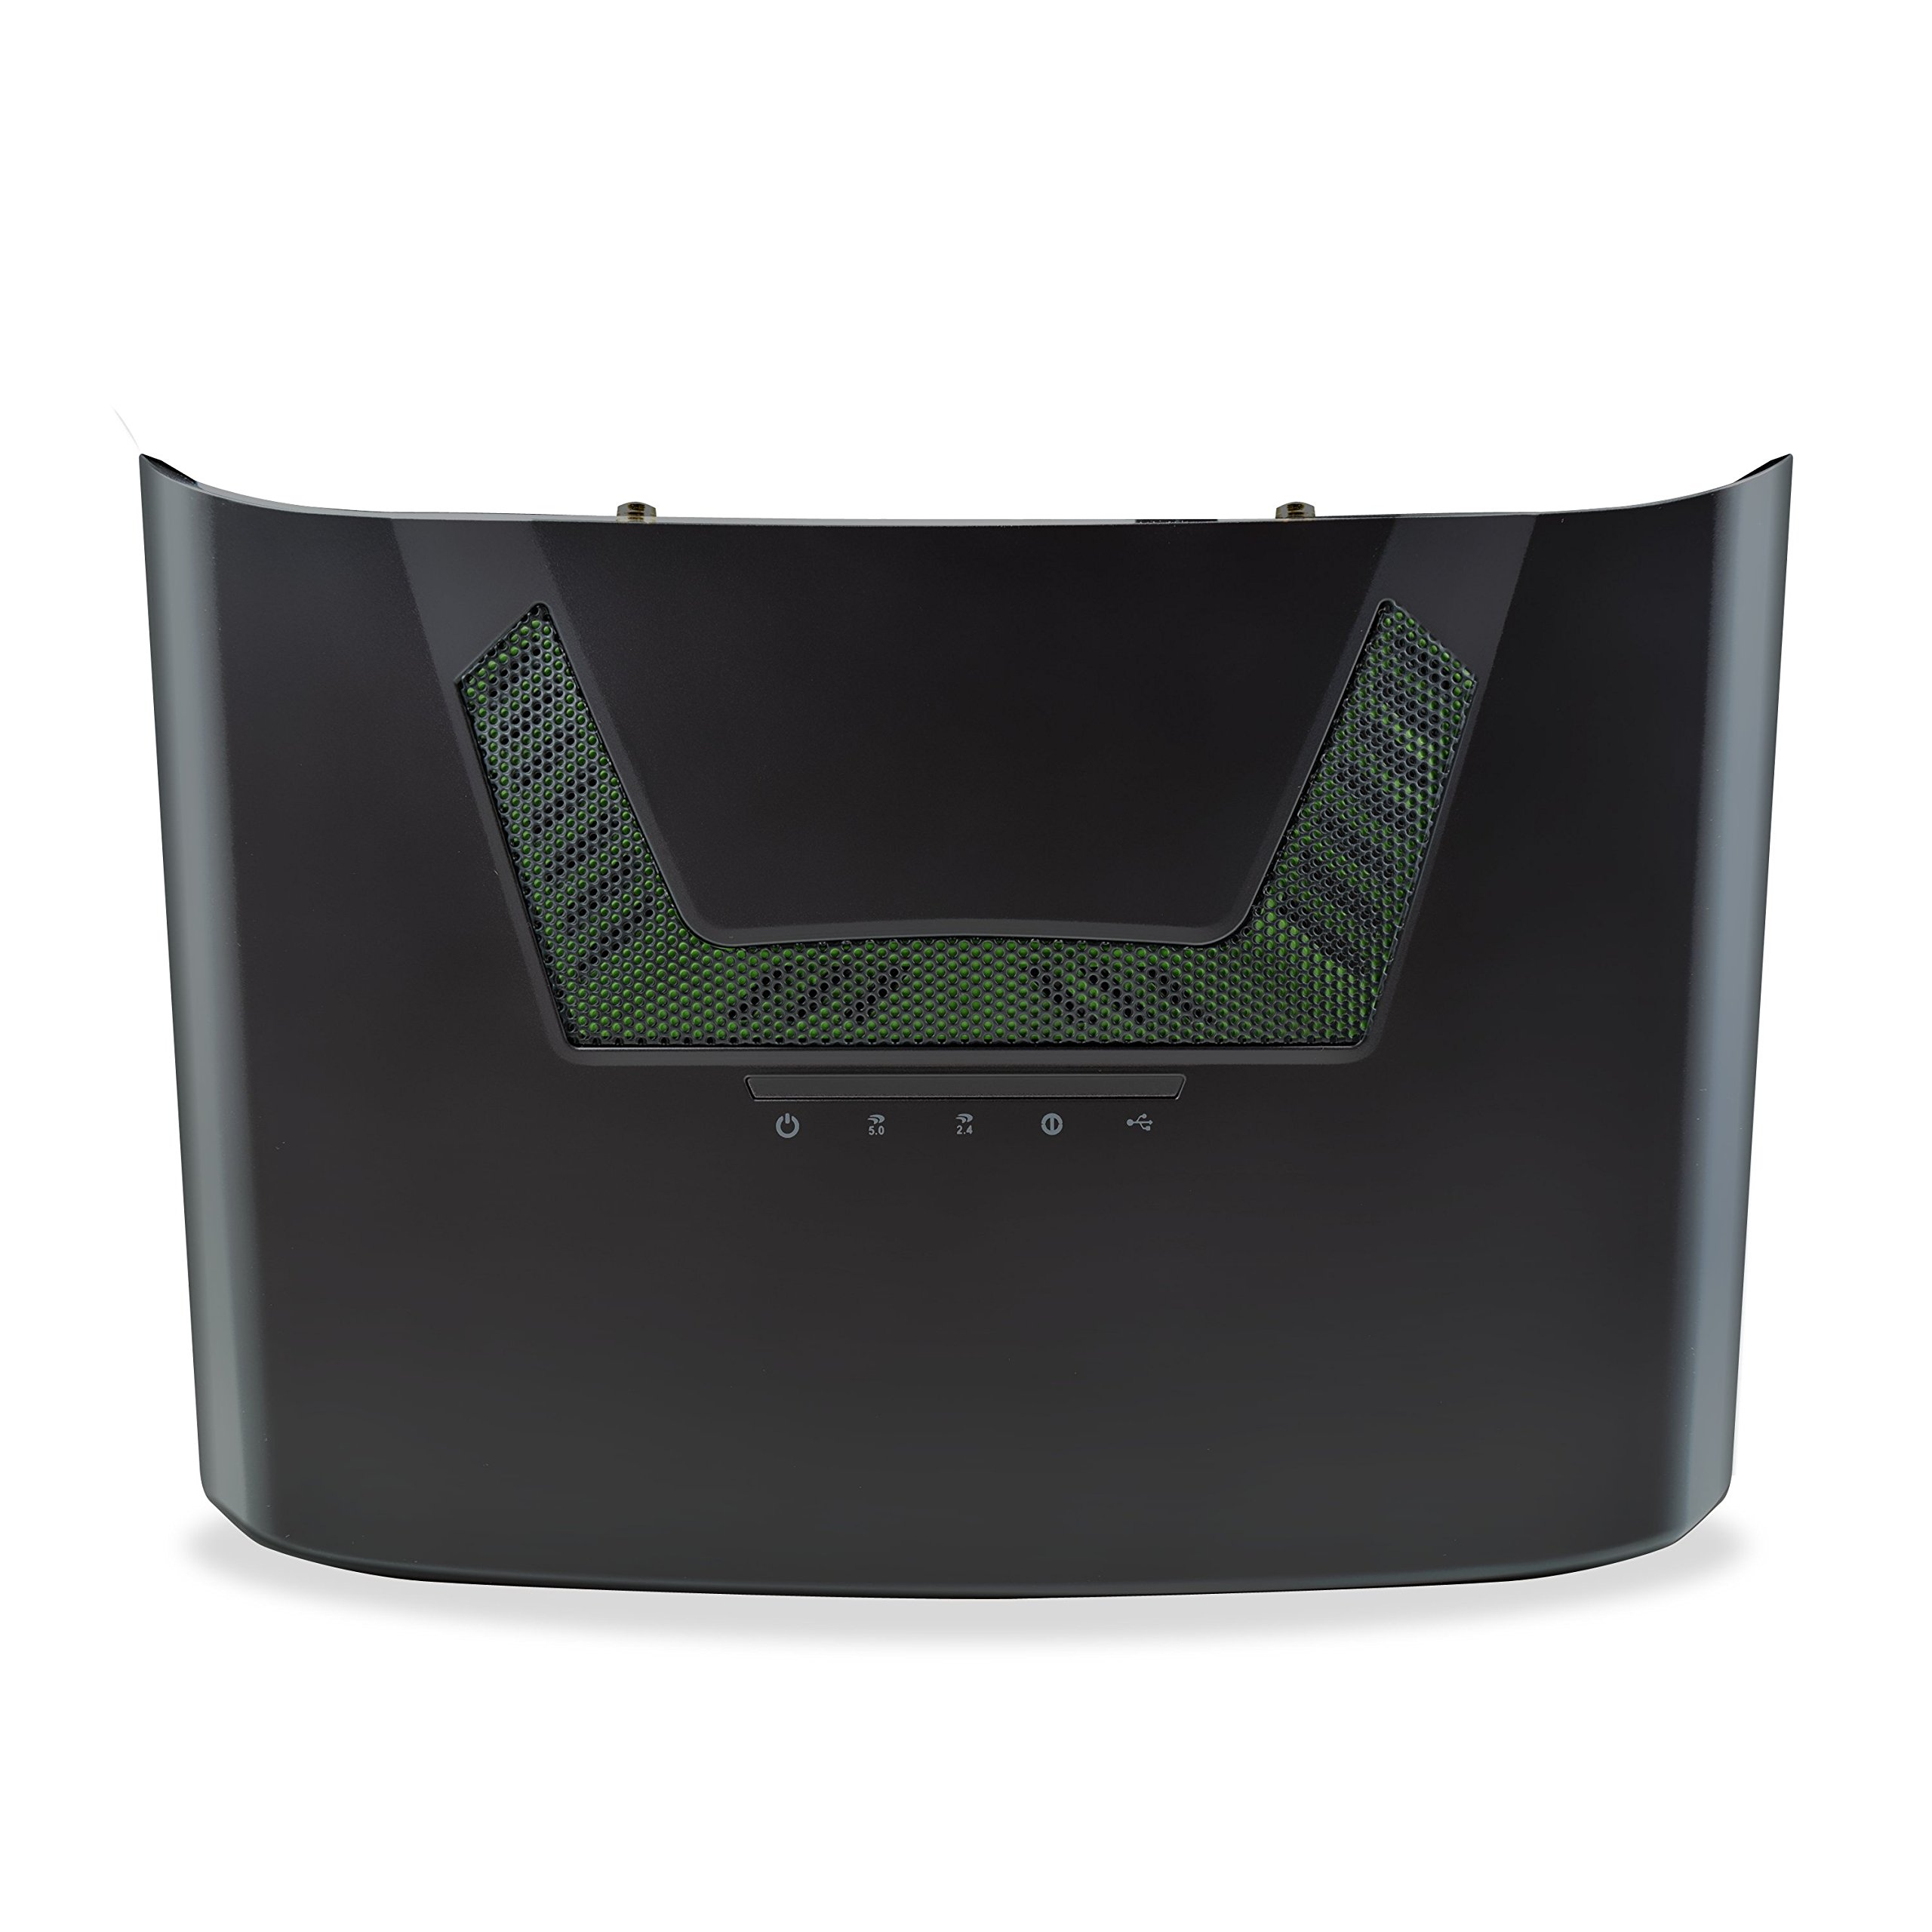 Amped Wireless Titan - High Power AC1900 Wi-Fi Router (RTA1900) by Amped Wireless (Image #5)